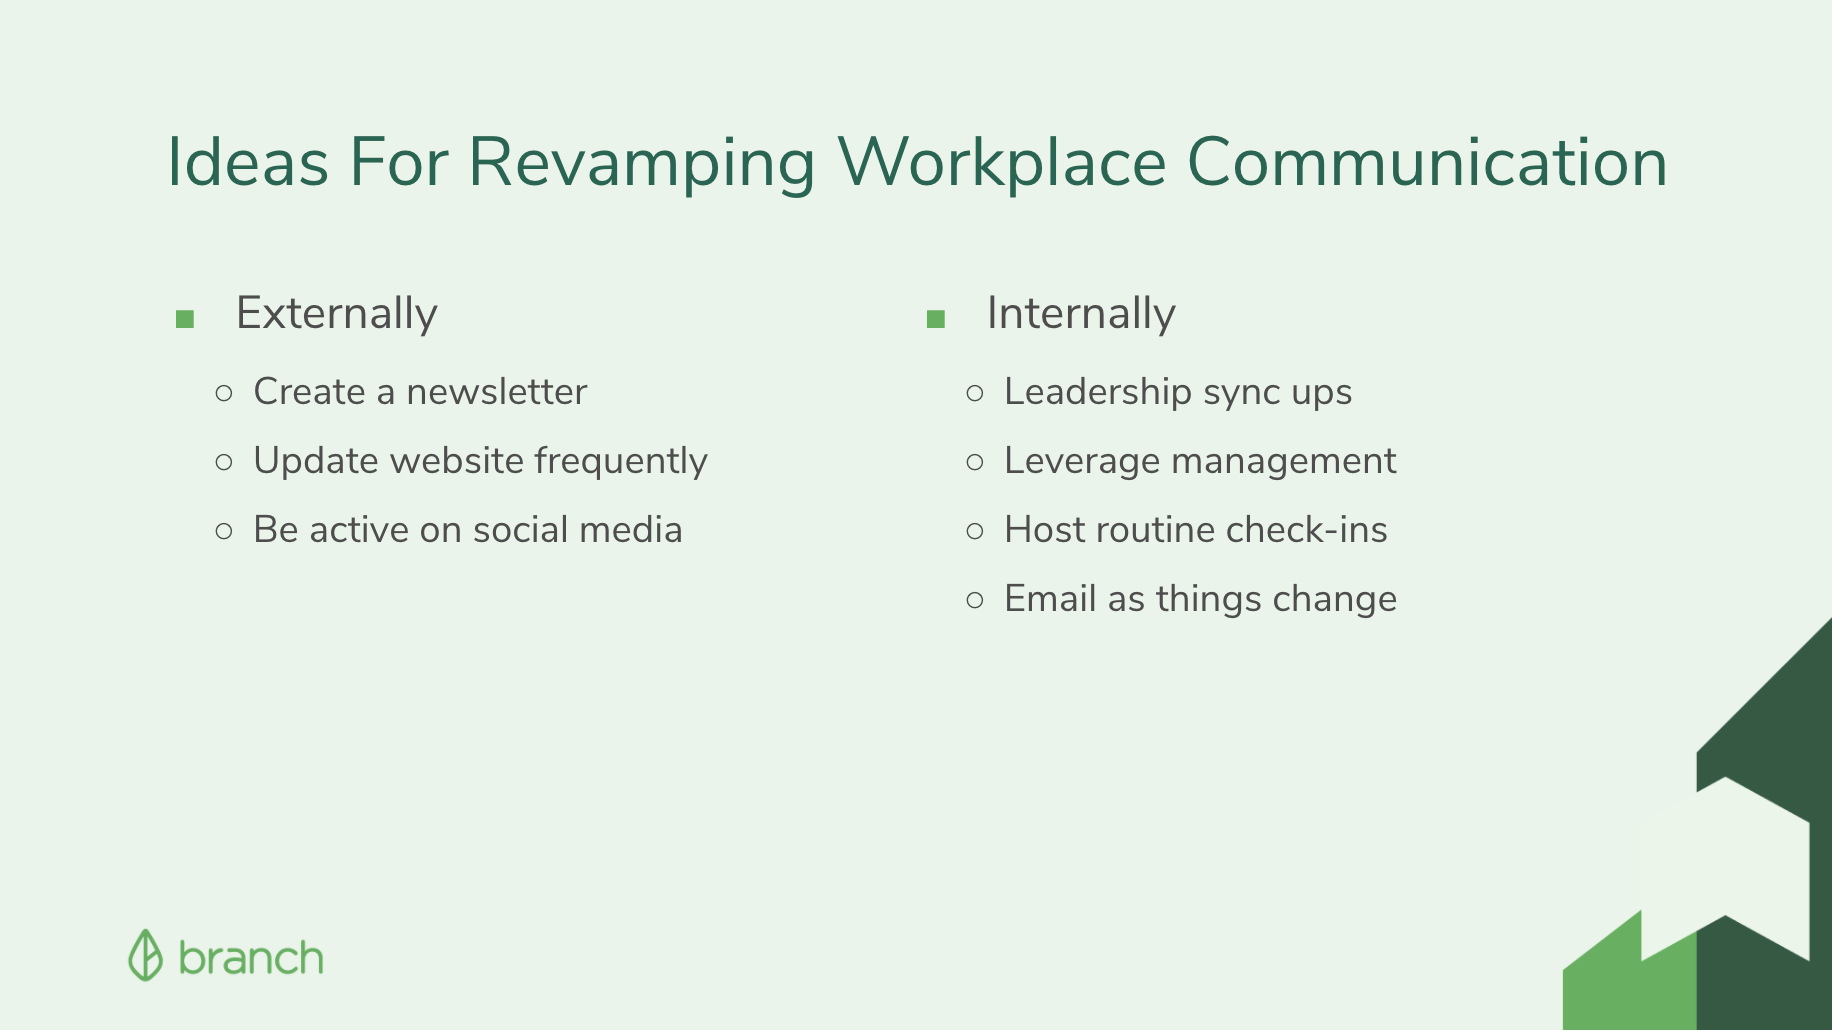 Ideas for Revamping Workplace Communication